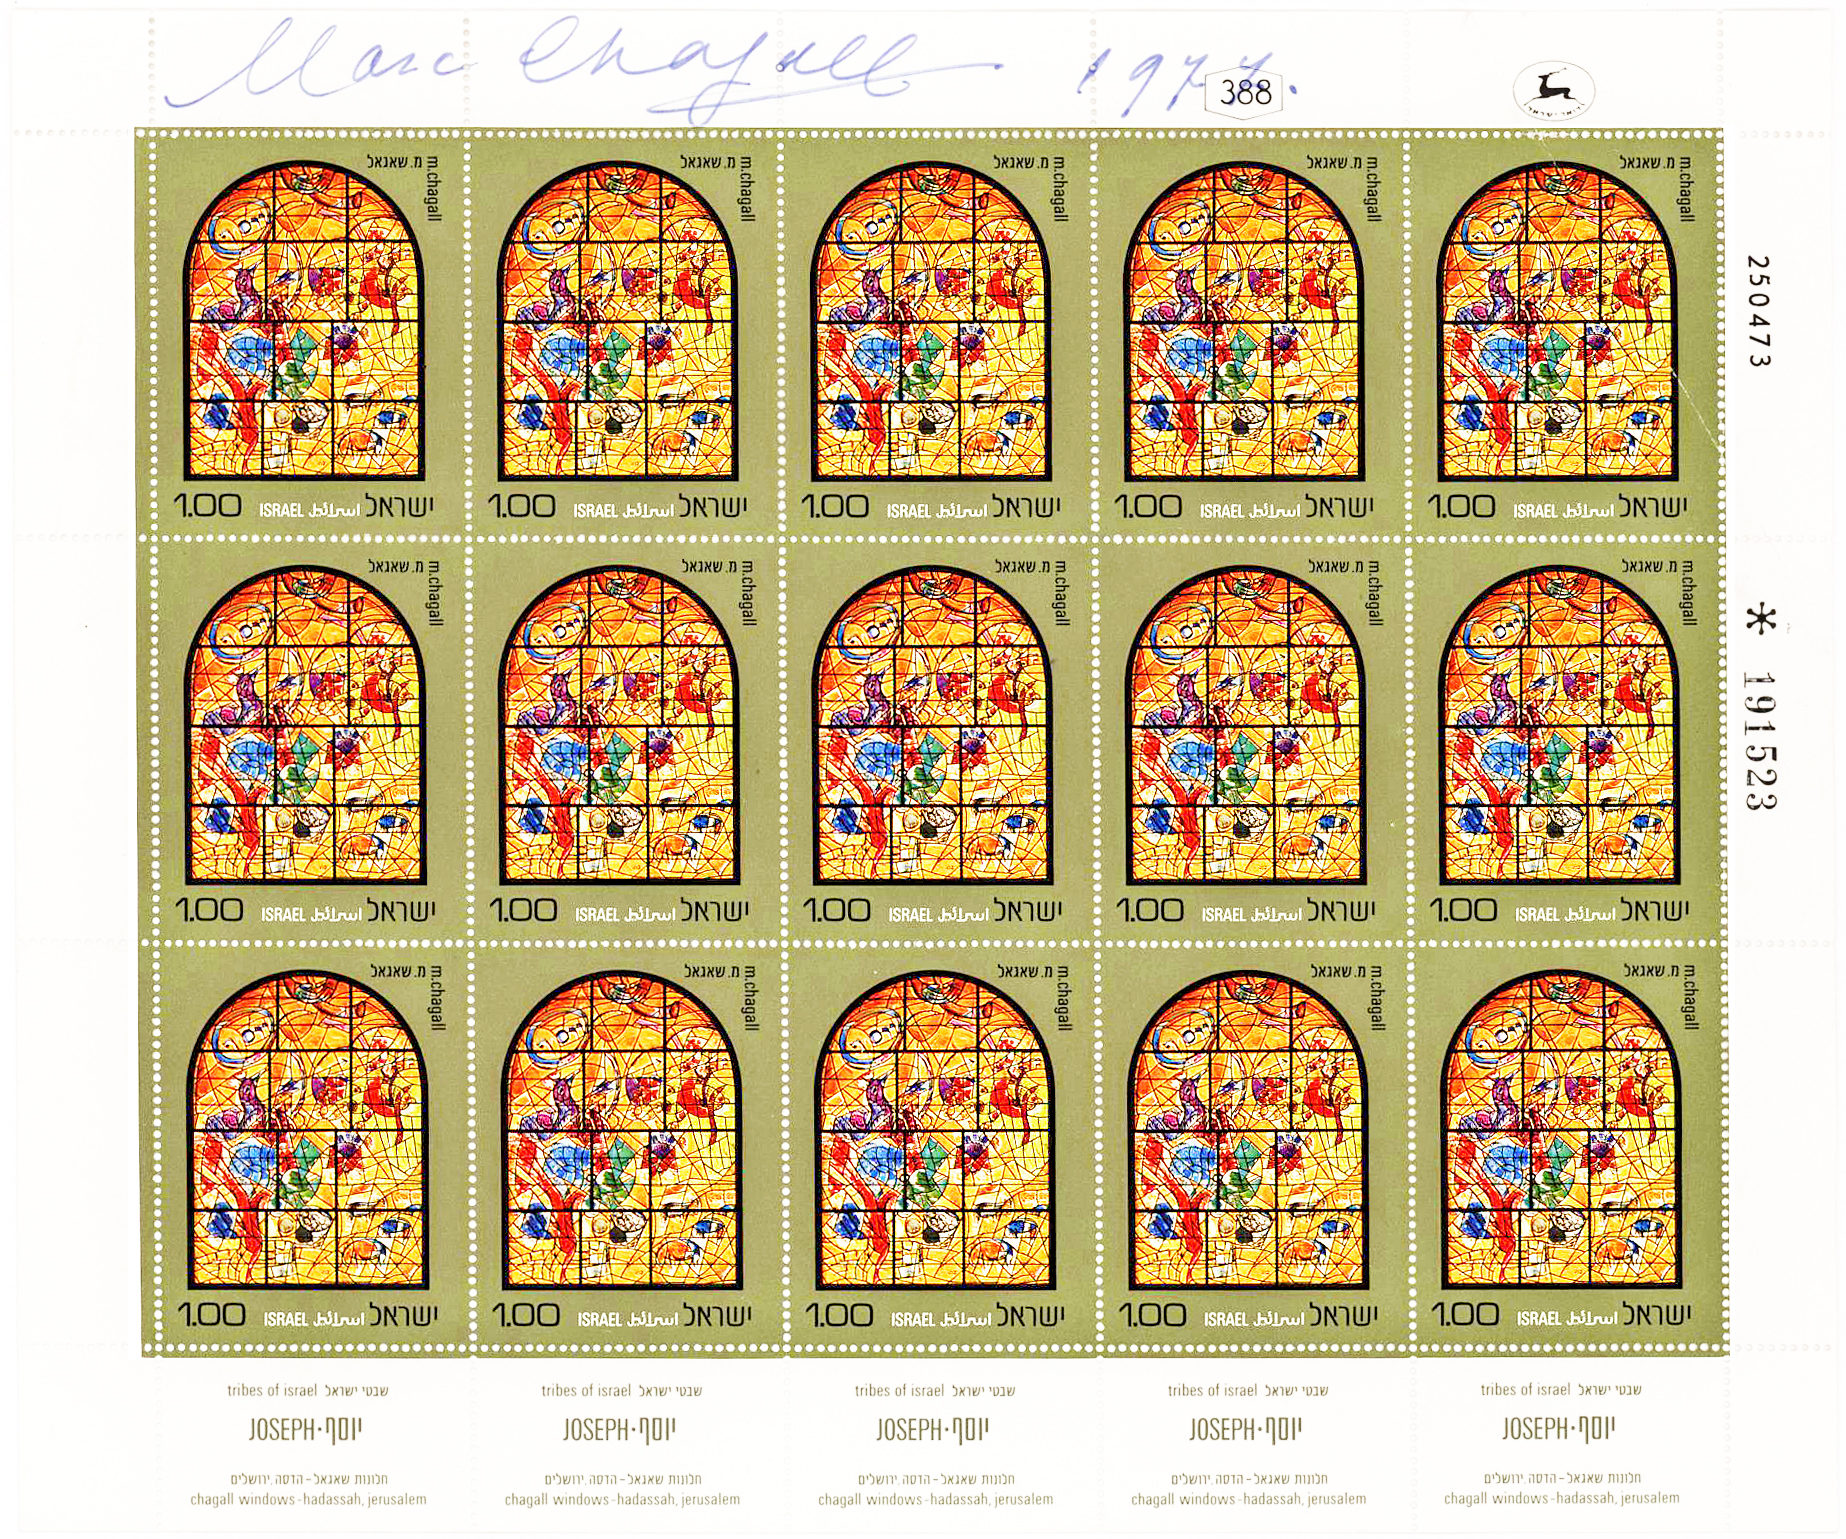 Signed Sheet of Colorful Israeli Stamps Featuring his Stained Glass Window for the Tribe of Joseph